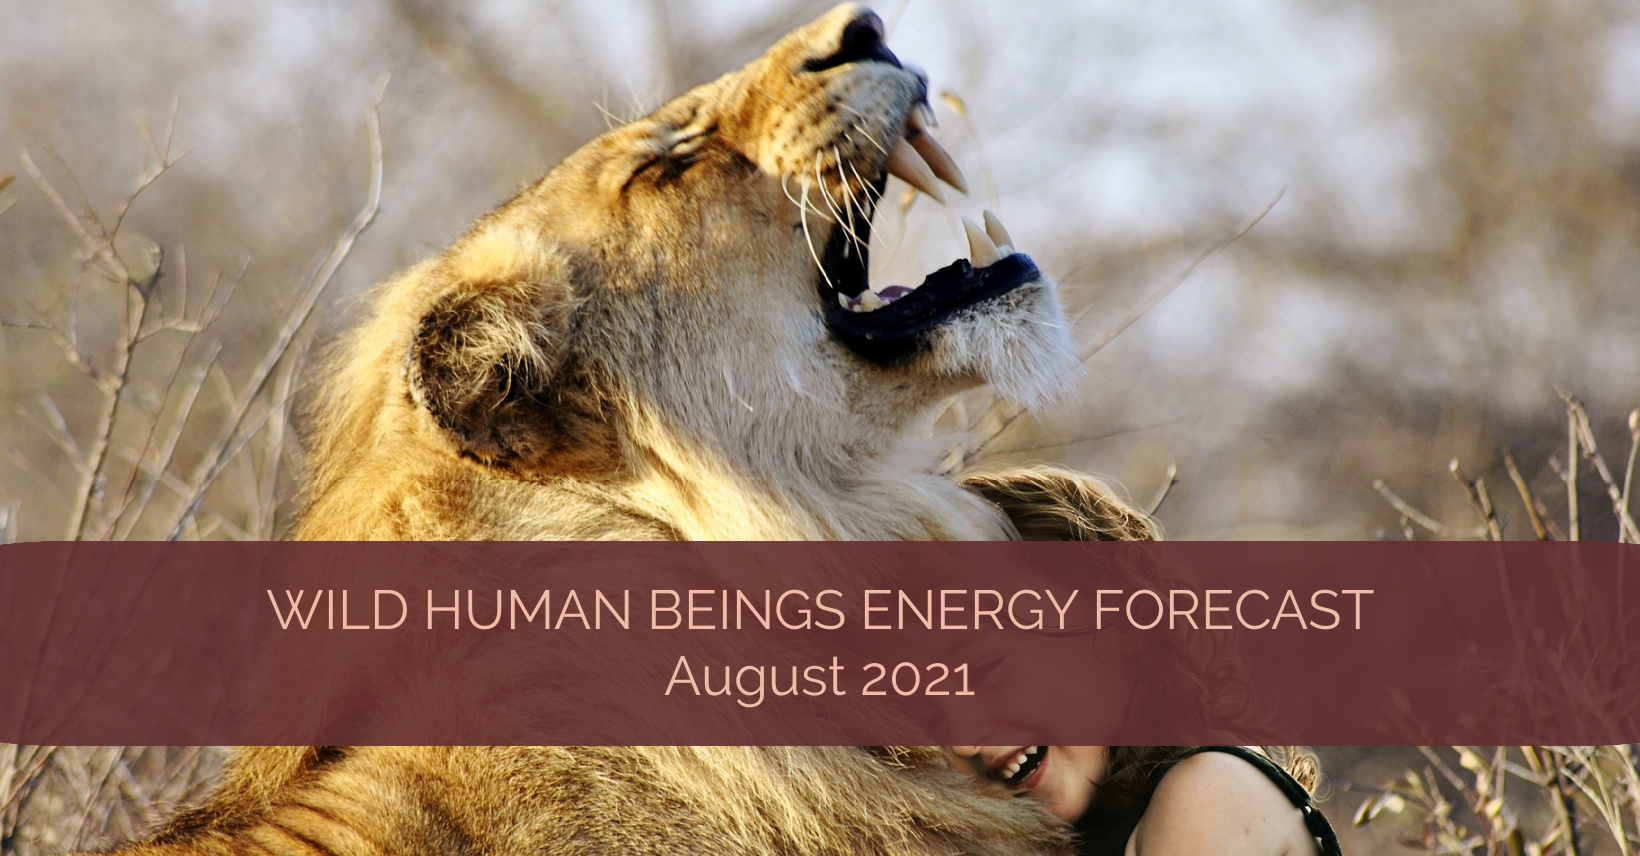 Wild Human Beings Energy Forecast August 2021